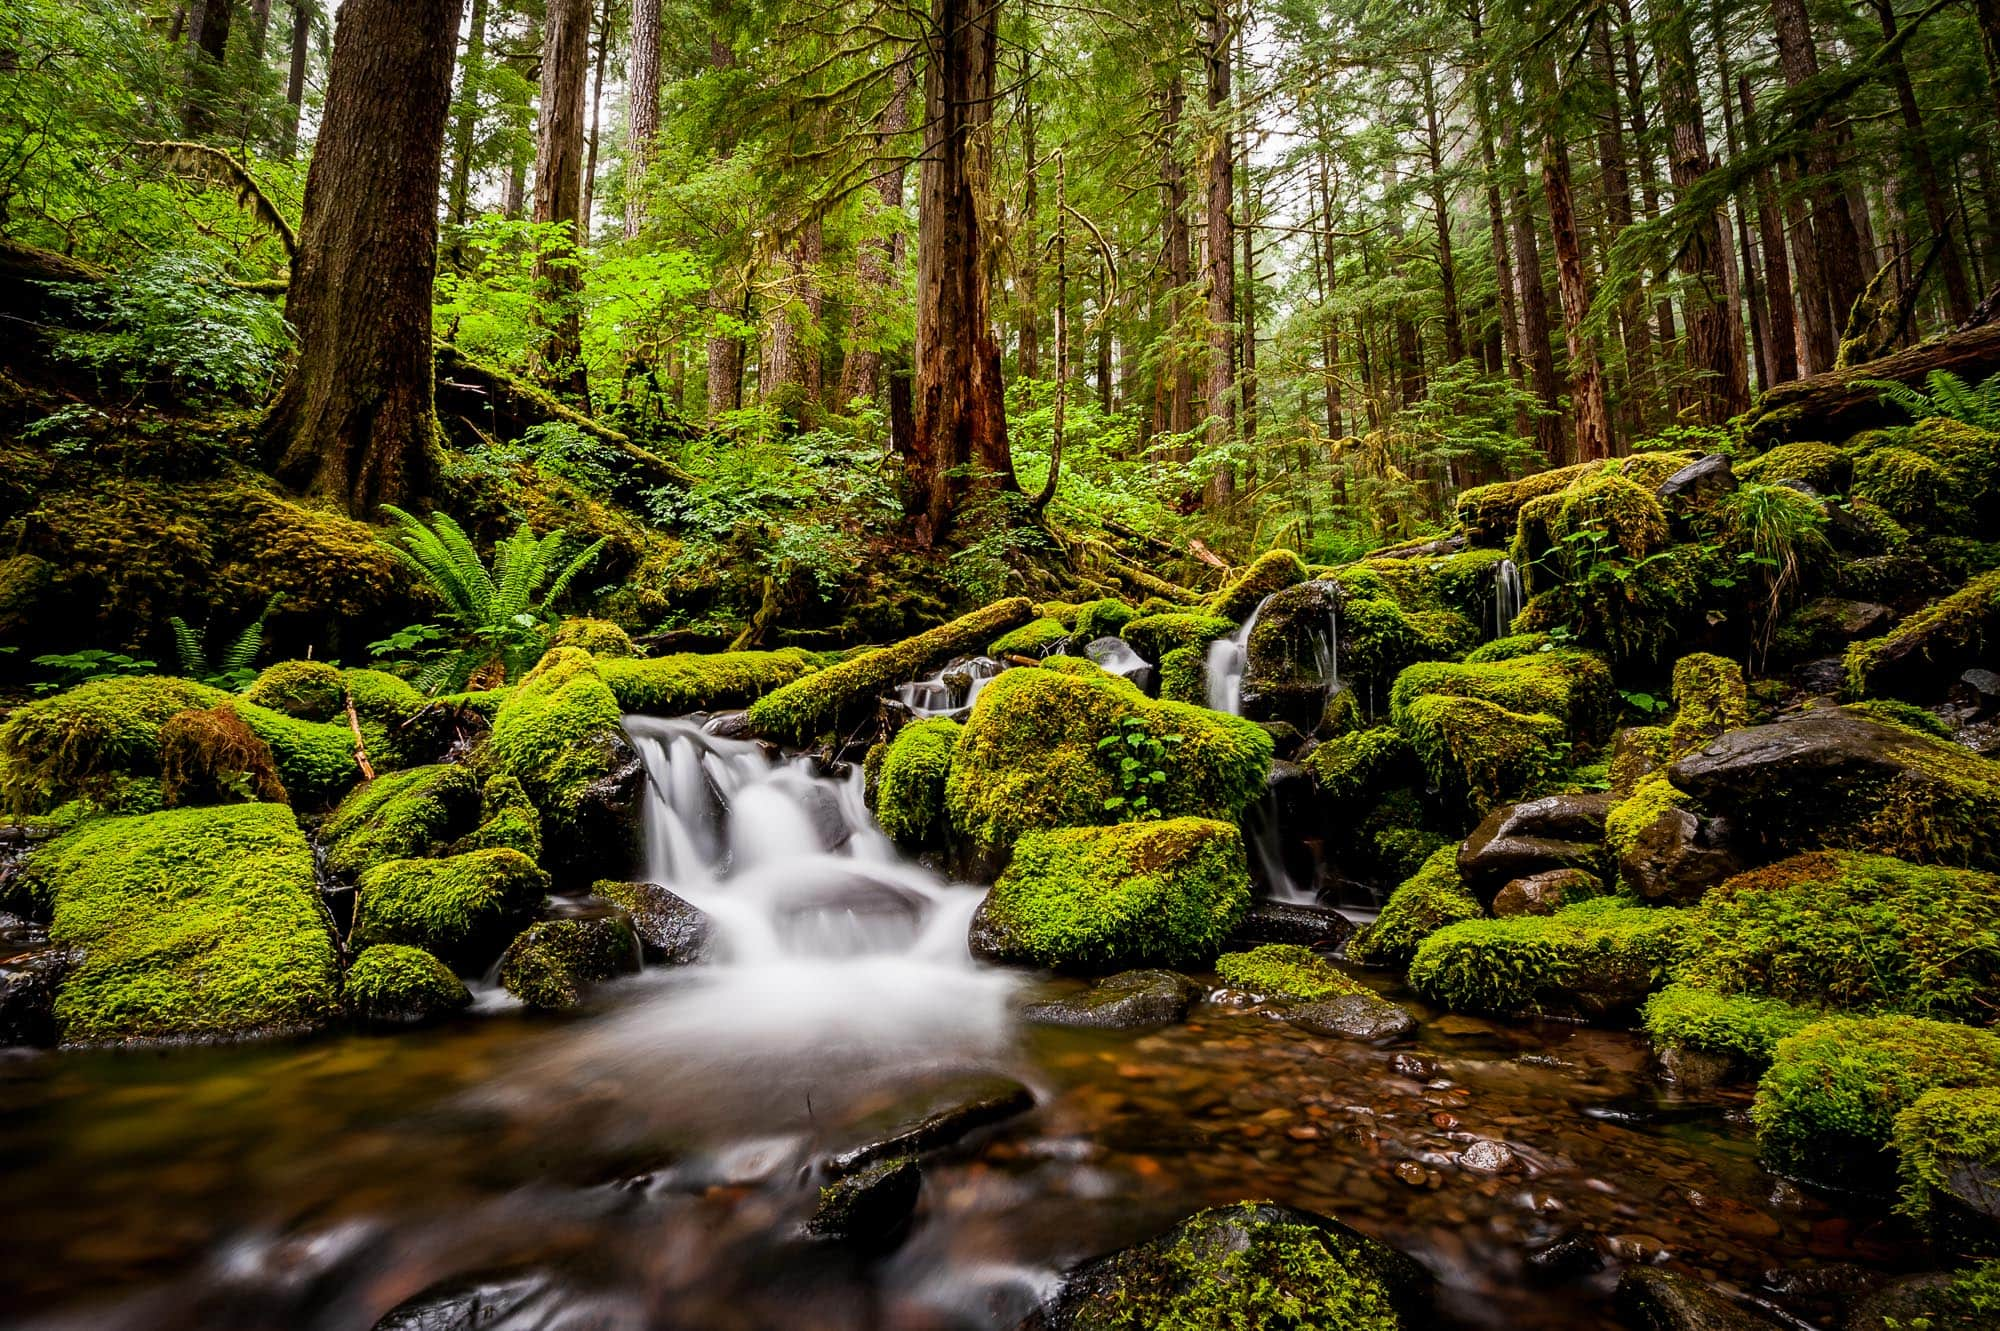 A pool forms at the bottom of a small waterfall in the Sol Duc Falls area of Olympic National Park that shows the incredible green color of the forest, the moss, and the massive old growth forest that surrounds it. Long exposure photo with milky smooth water